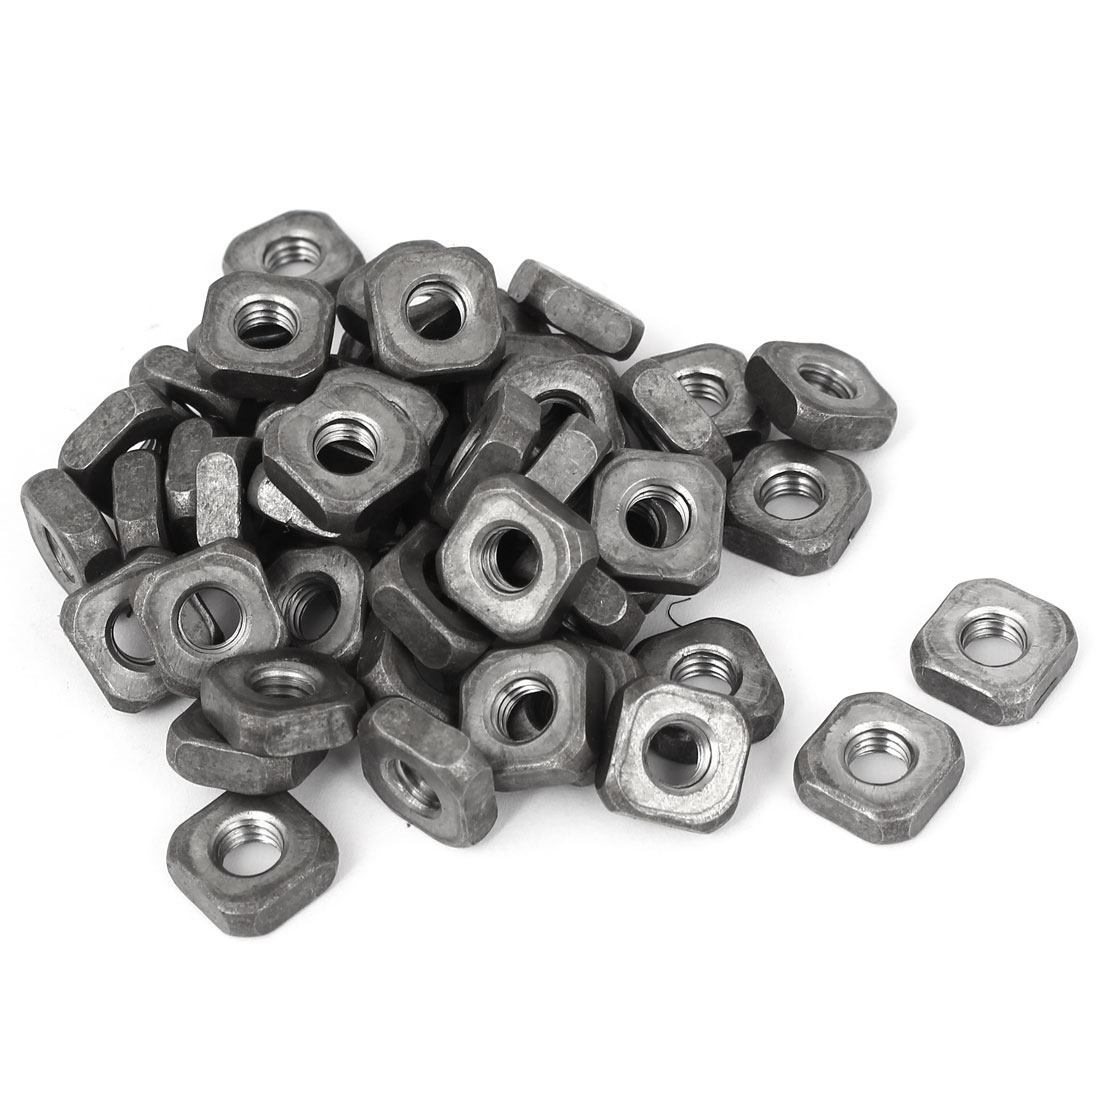 M8x16mmx6mm Carbon Steel Square Machine Screw Nuts 50pcs